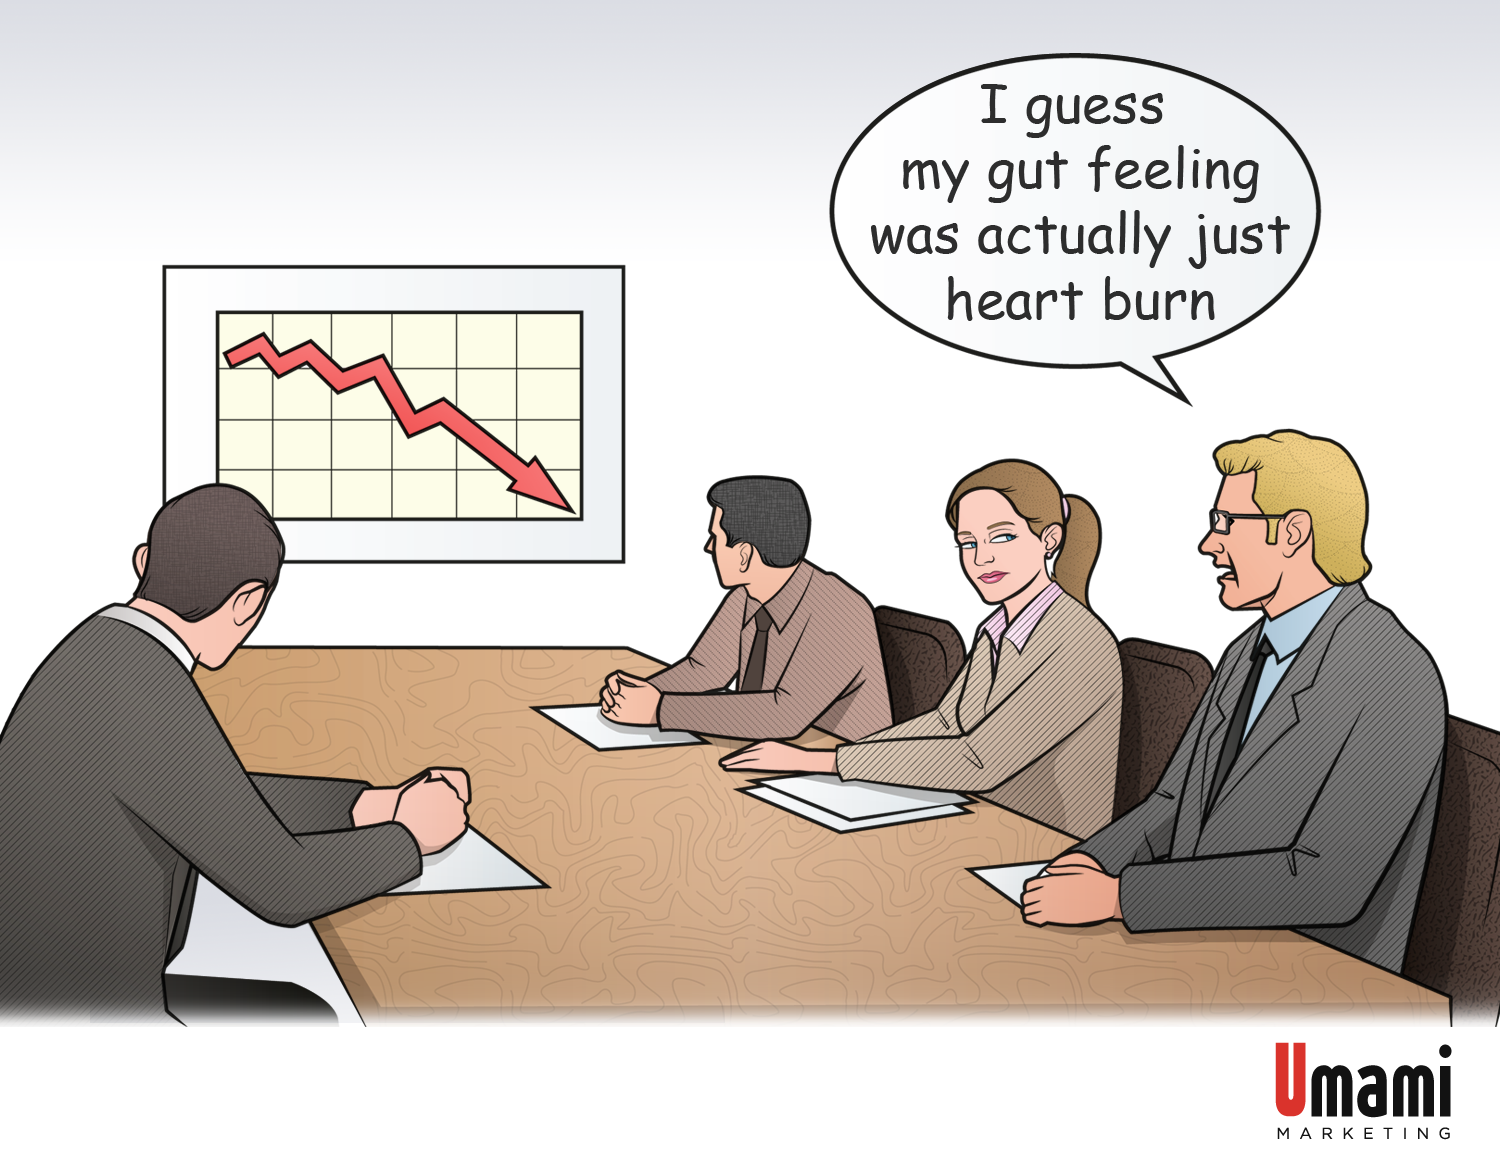 Gut Feelings...or Just Heartburn? Why You Need Analytics